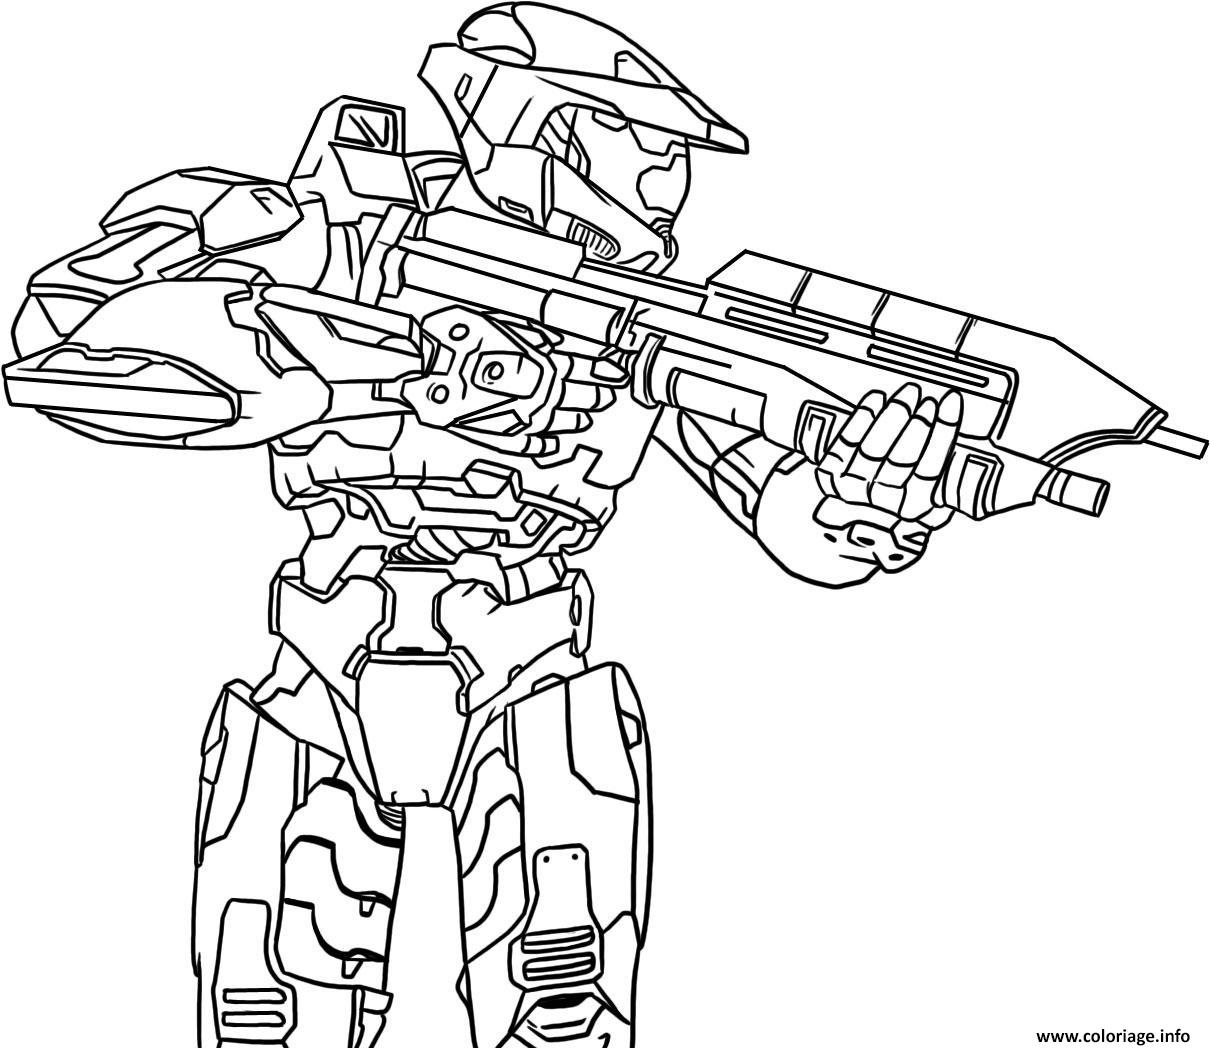 Coloriage Halo Precision Dessin